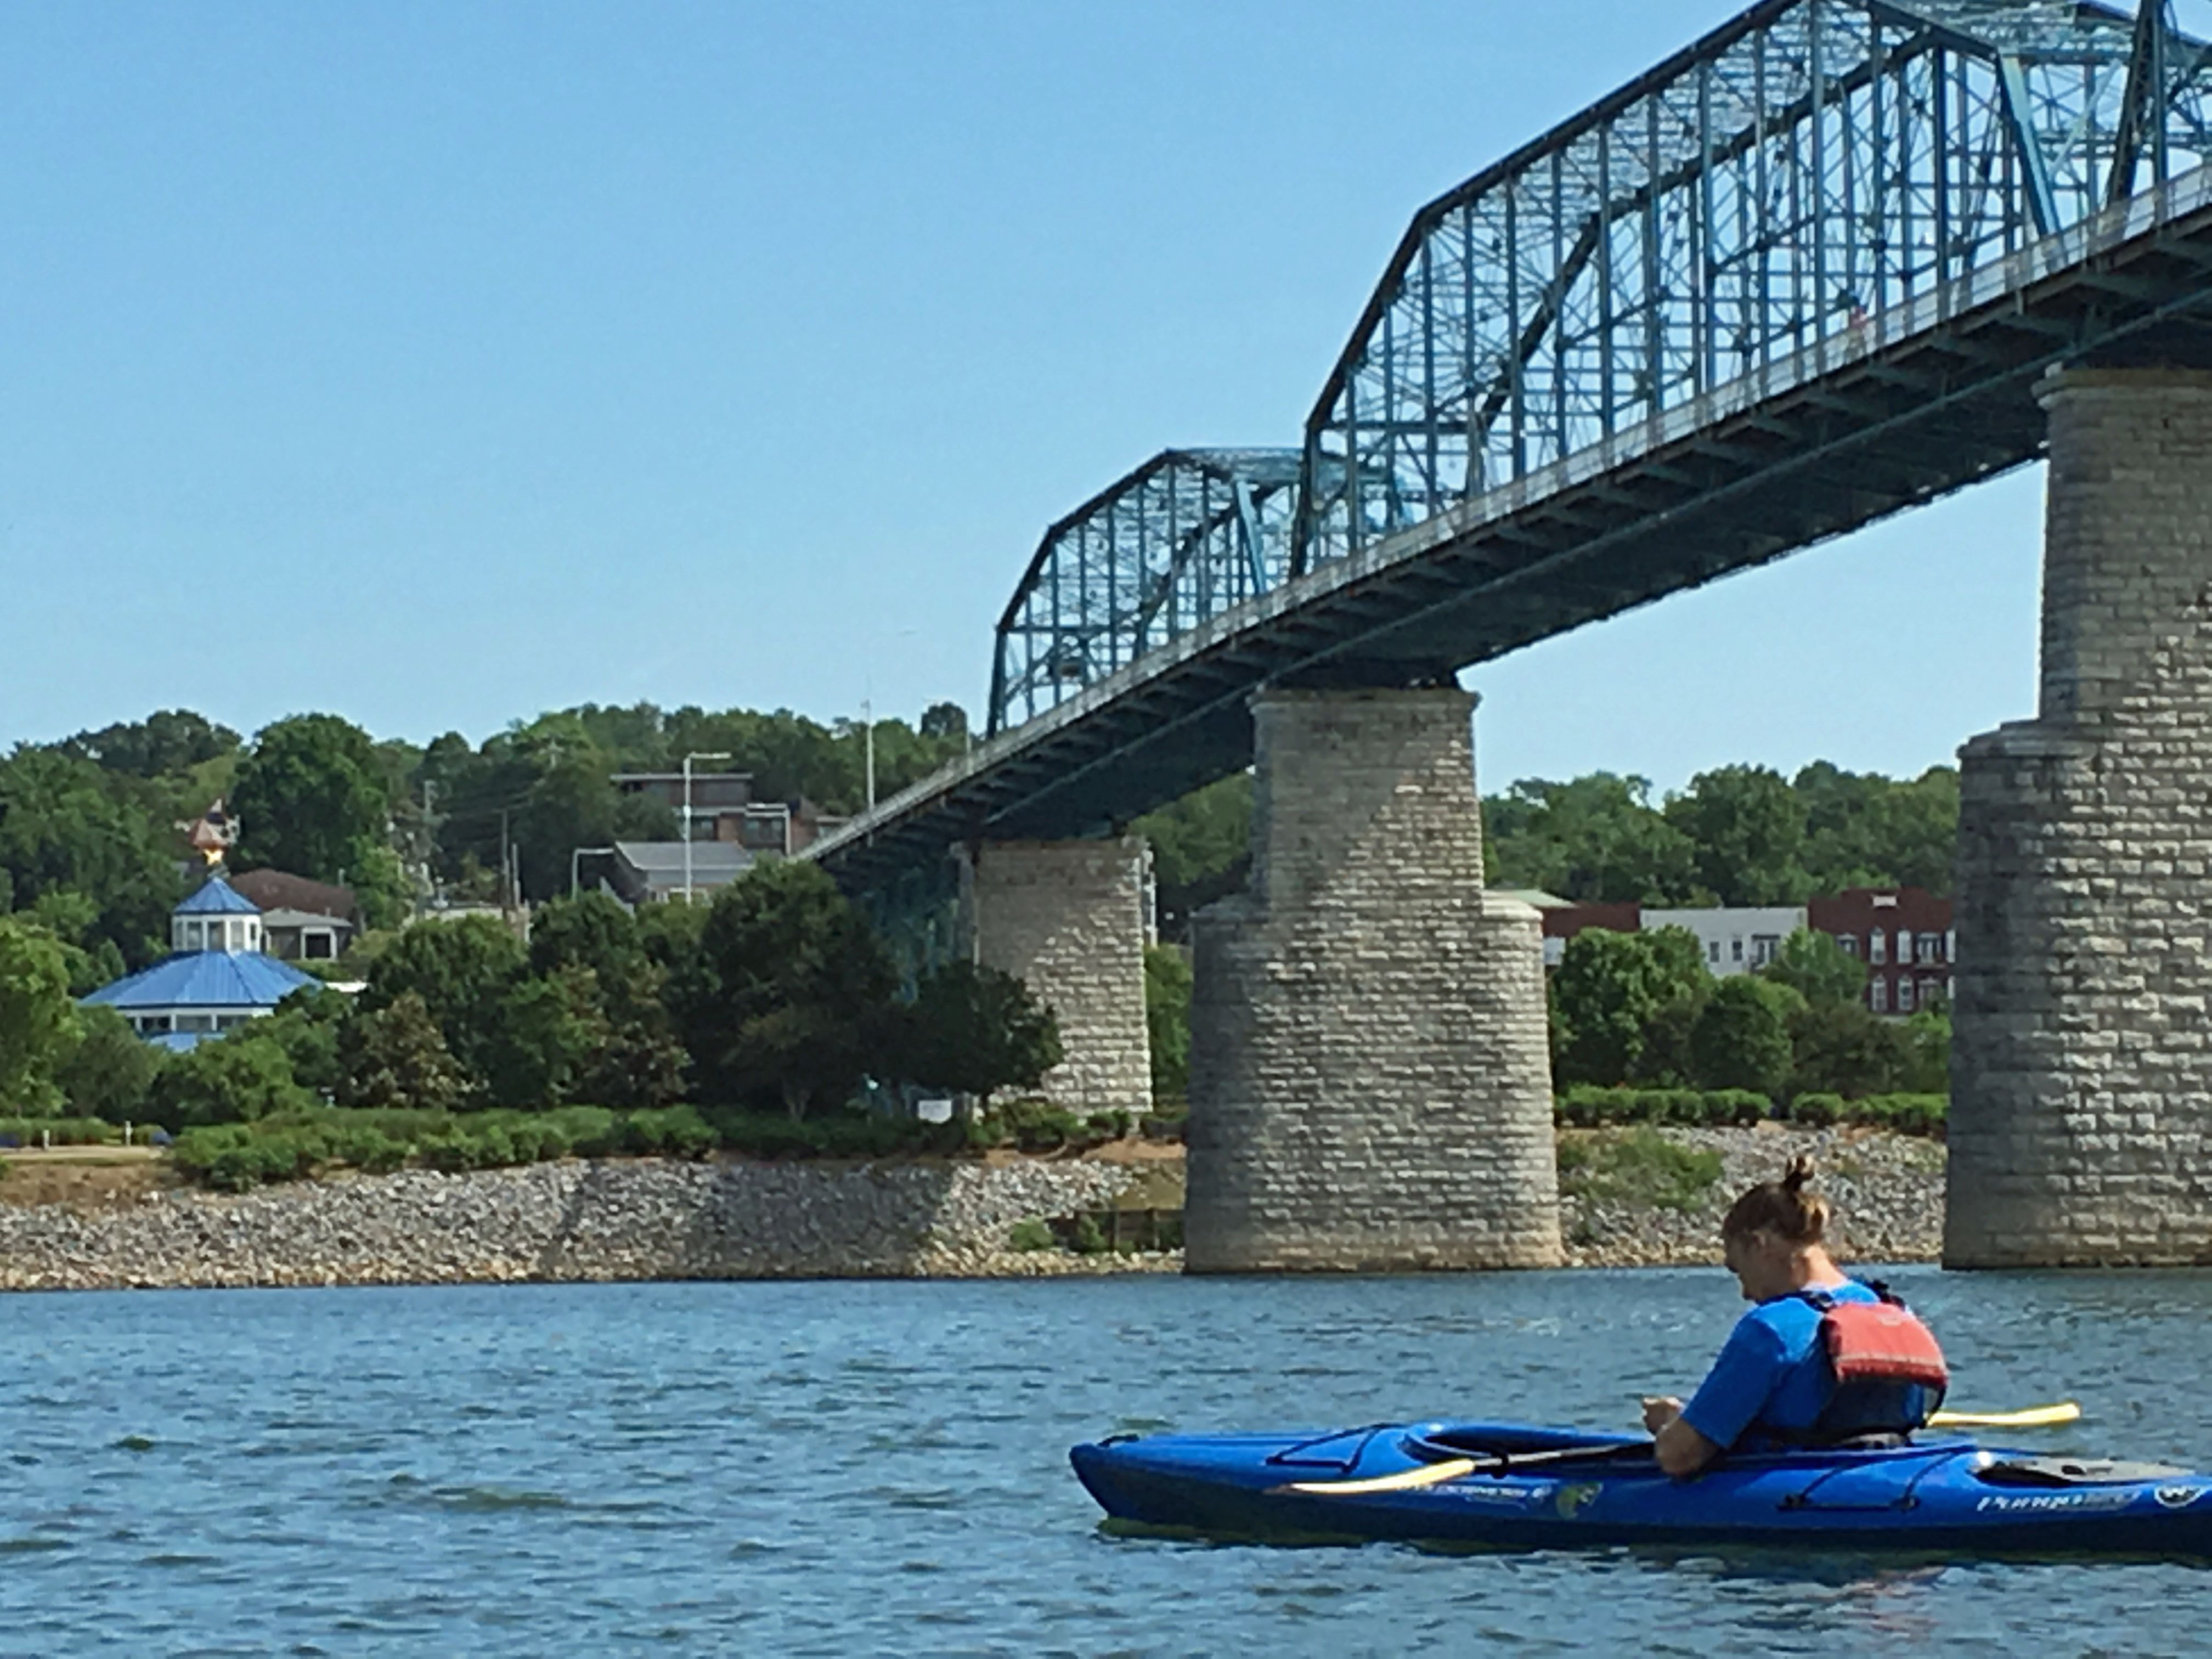 Travel Guide: Visit Chattanooga on a Budget